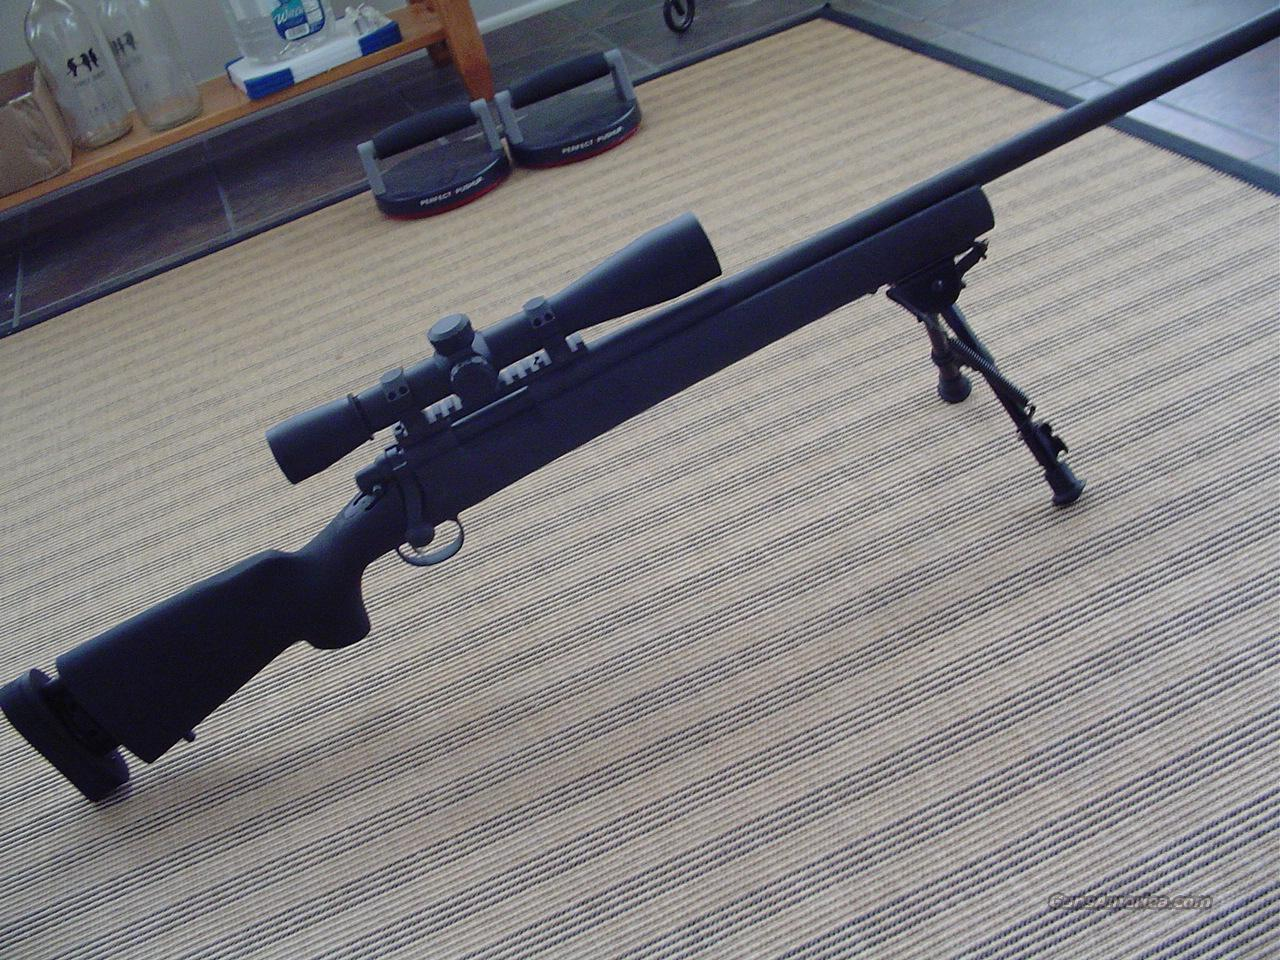 Remington M-24 M700 Sniper Rifle Leupold M3 MK4   Guns > Rifles > Tactical/Sniper Rifles